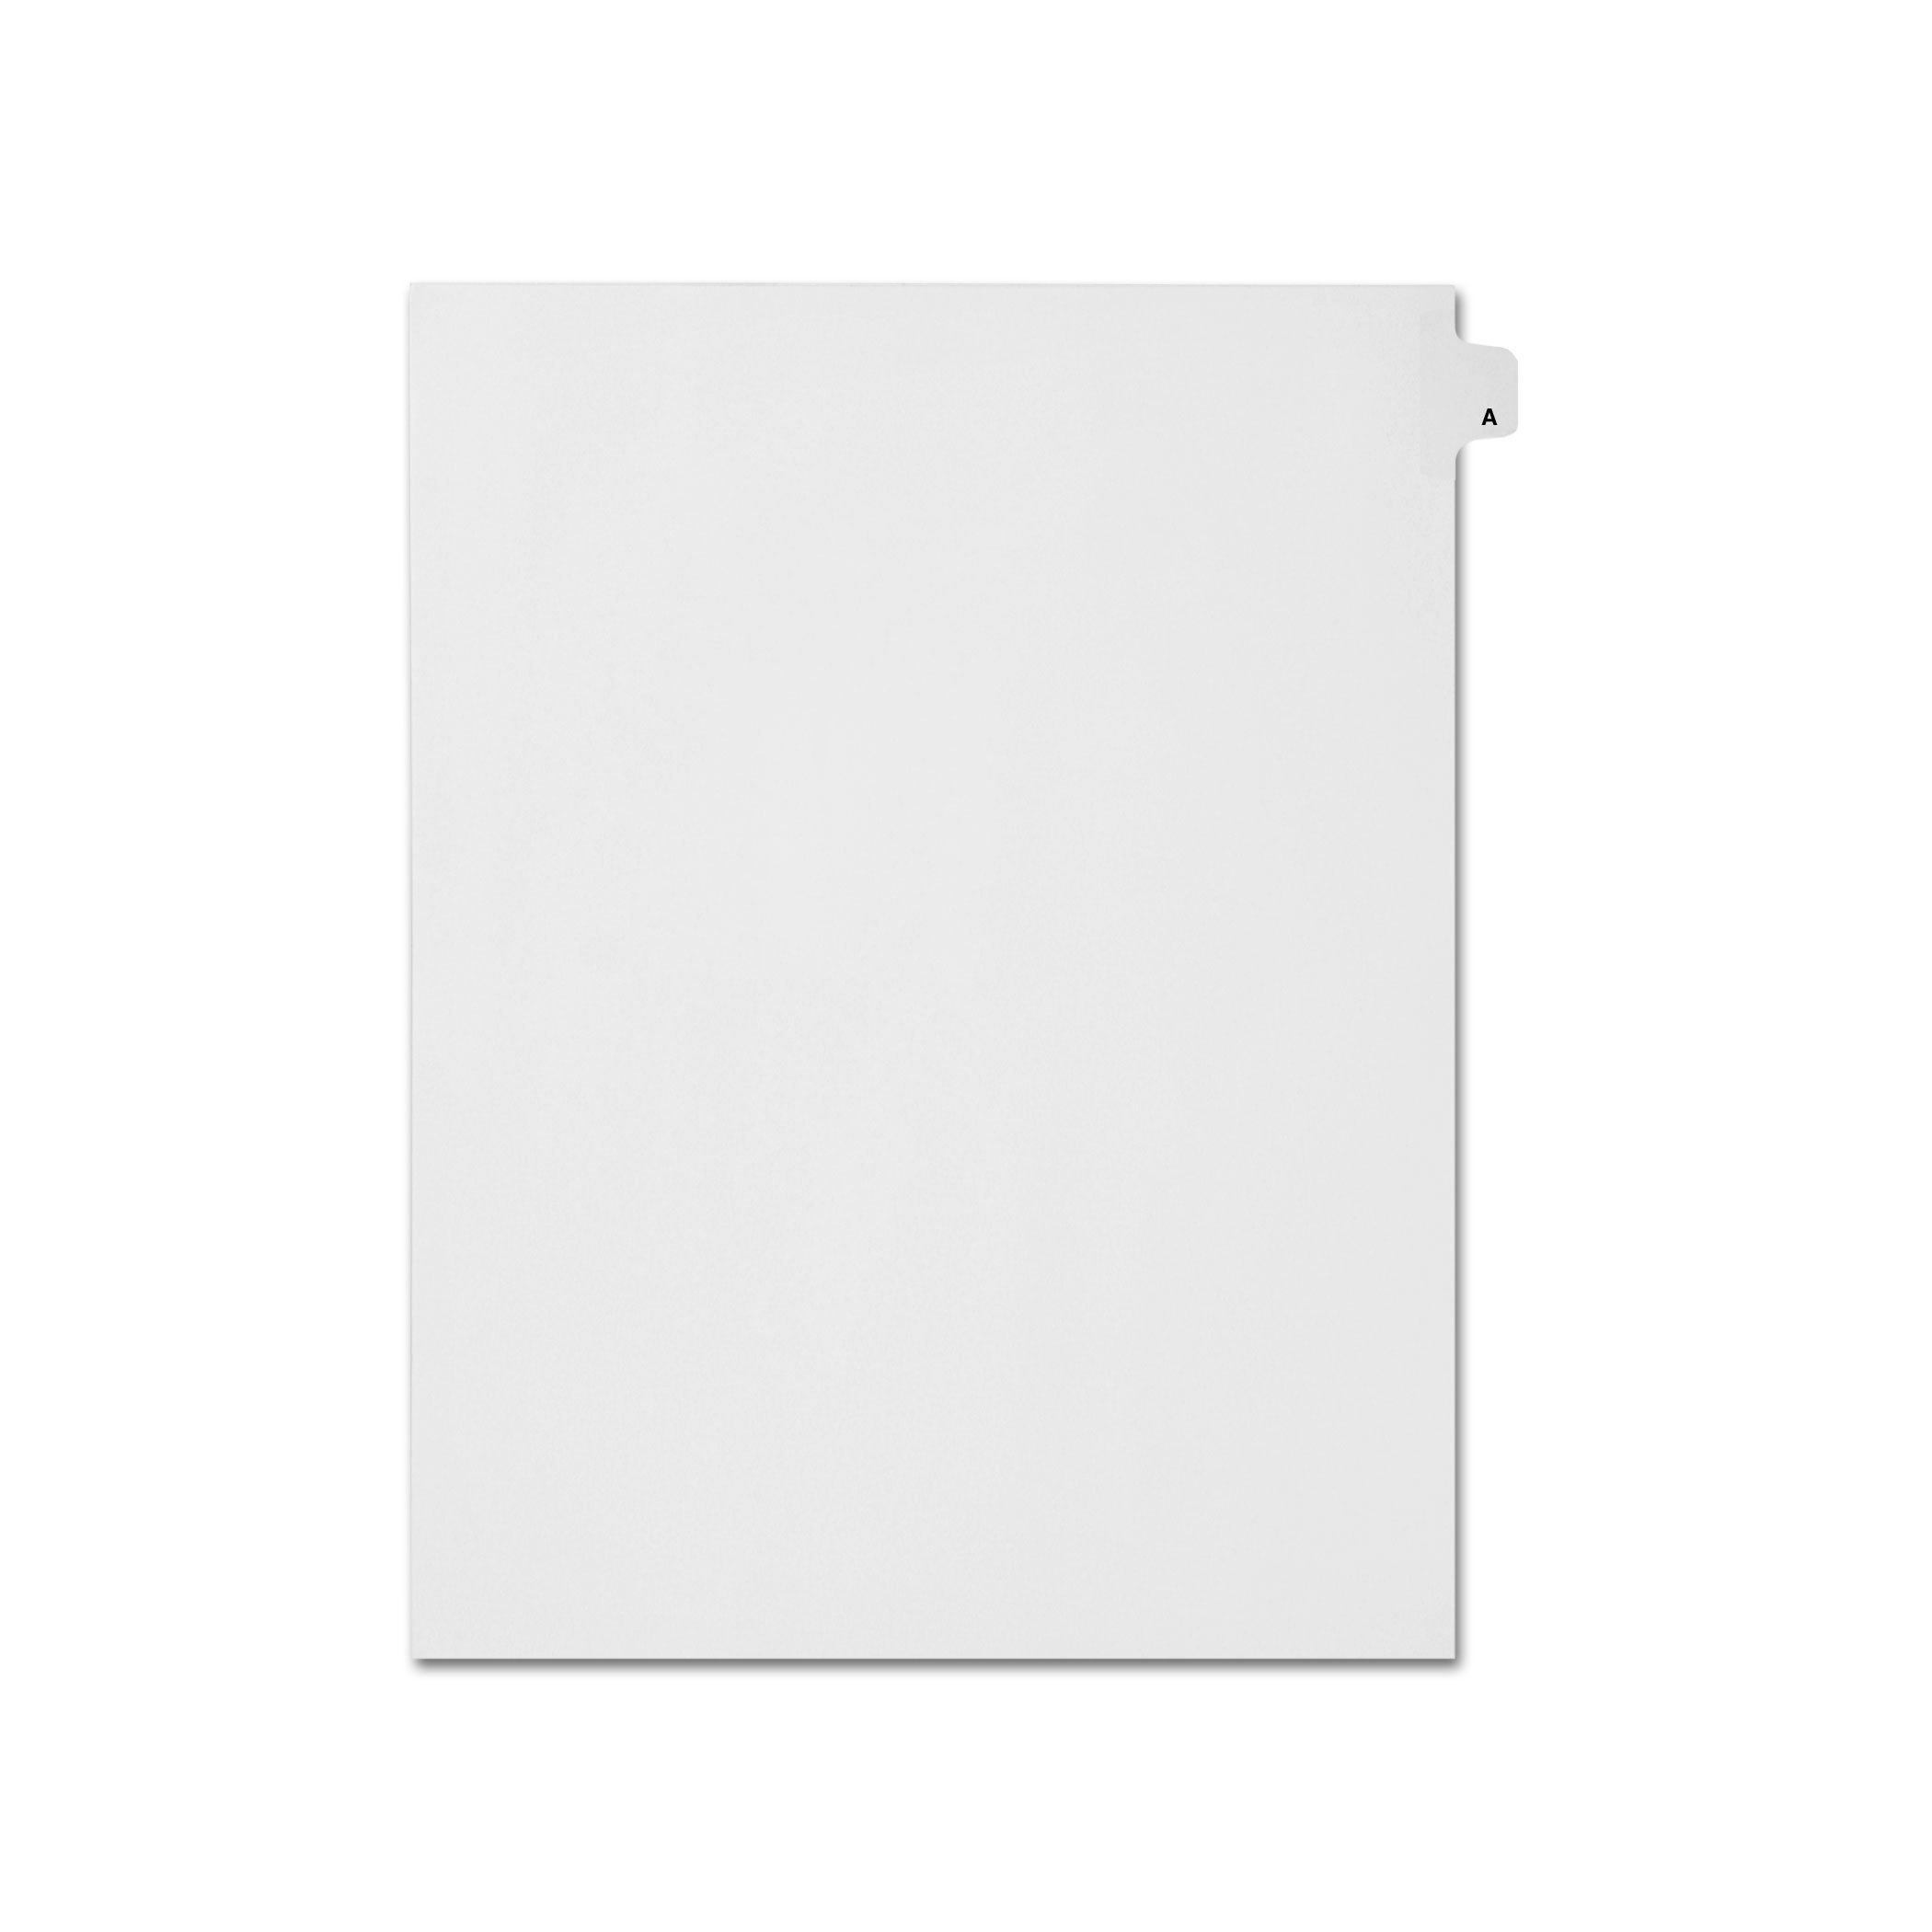 AMZfiling Individual Legal Index Tab Dividers, Compatible with Avery- Printed A, Letter Size, White, Side Tabs, Position 1 (25 Sheets/pkg)